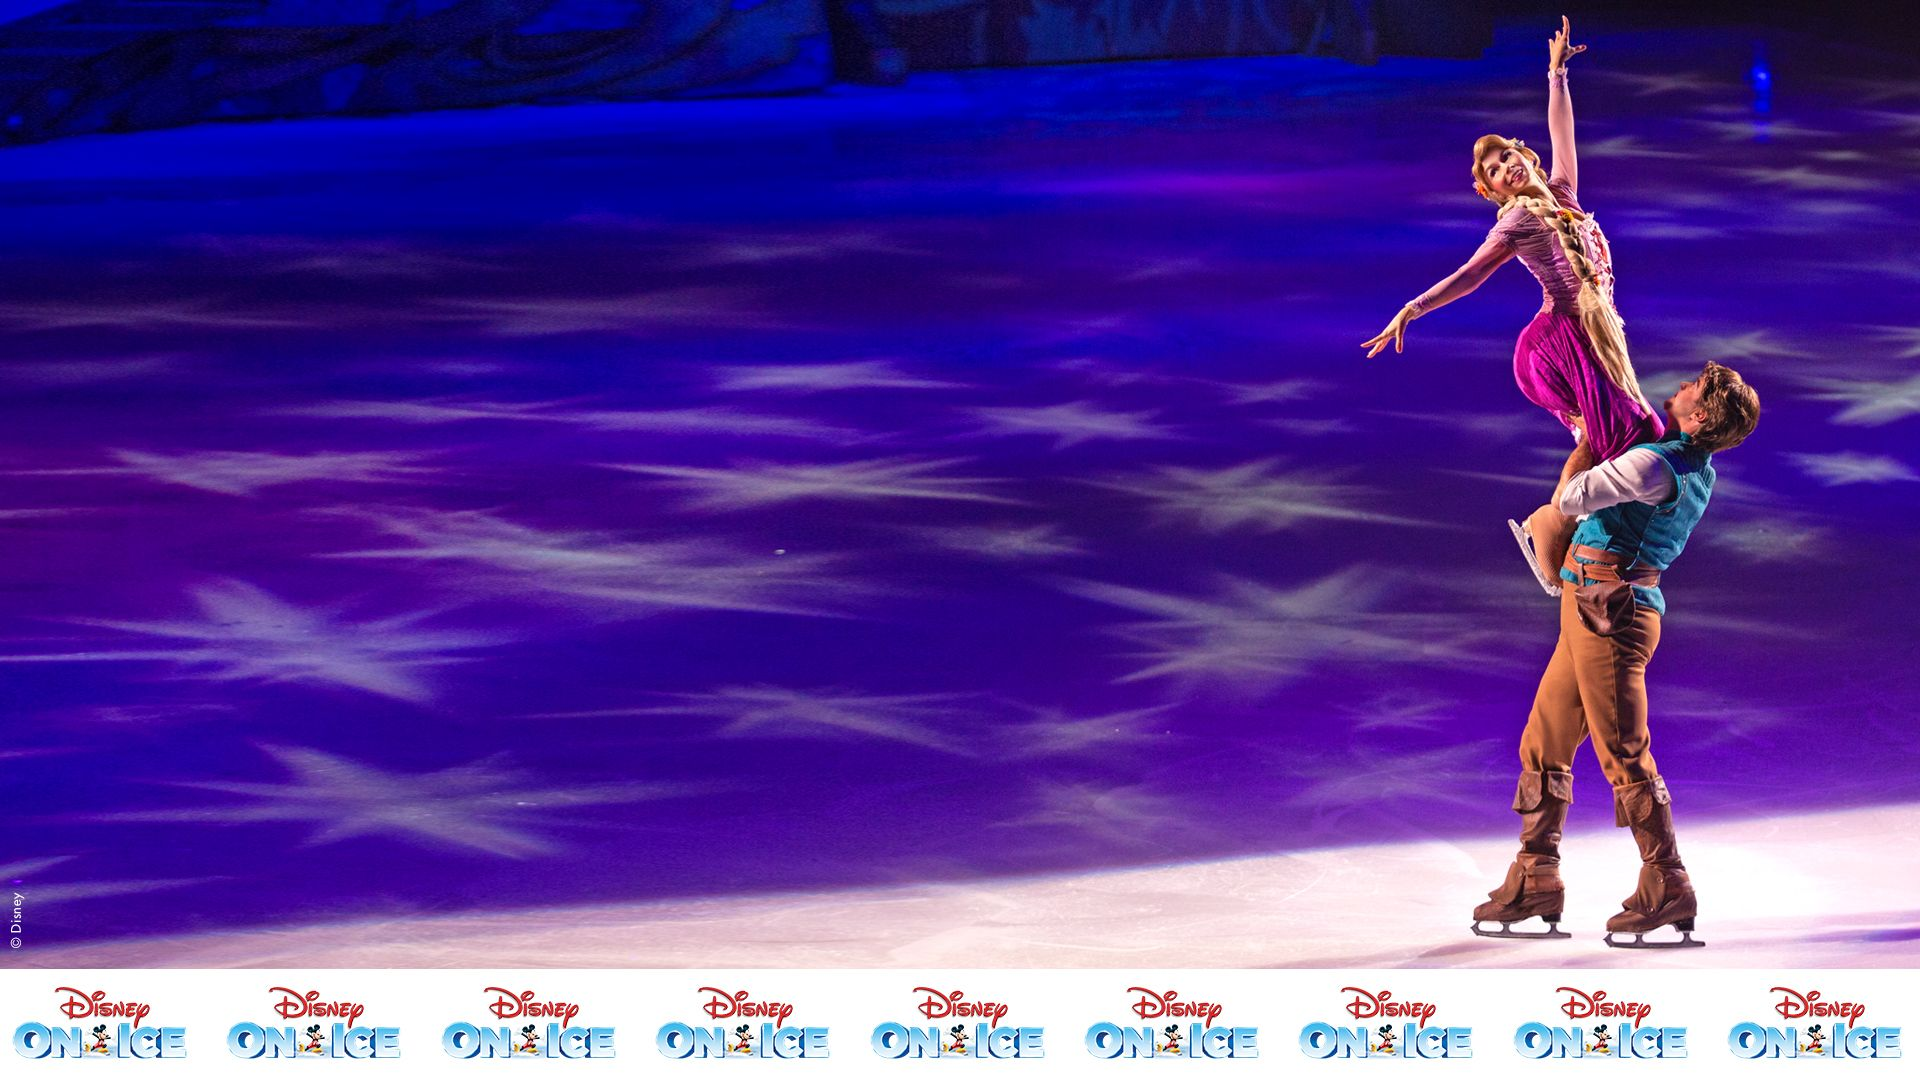 Disney On Ice Zoom Background Disney On Ice Background Cool Coloring Pages